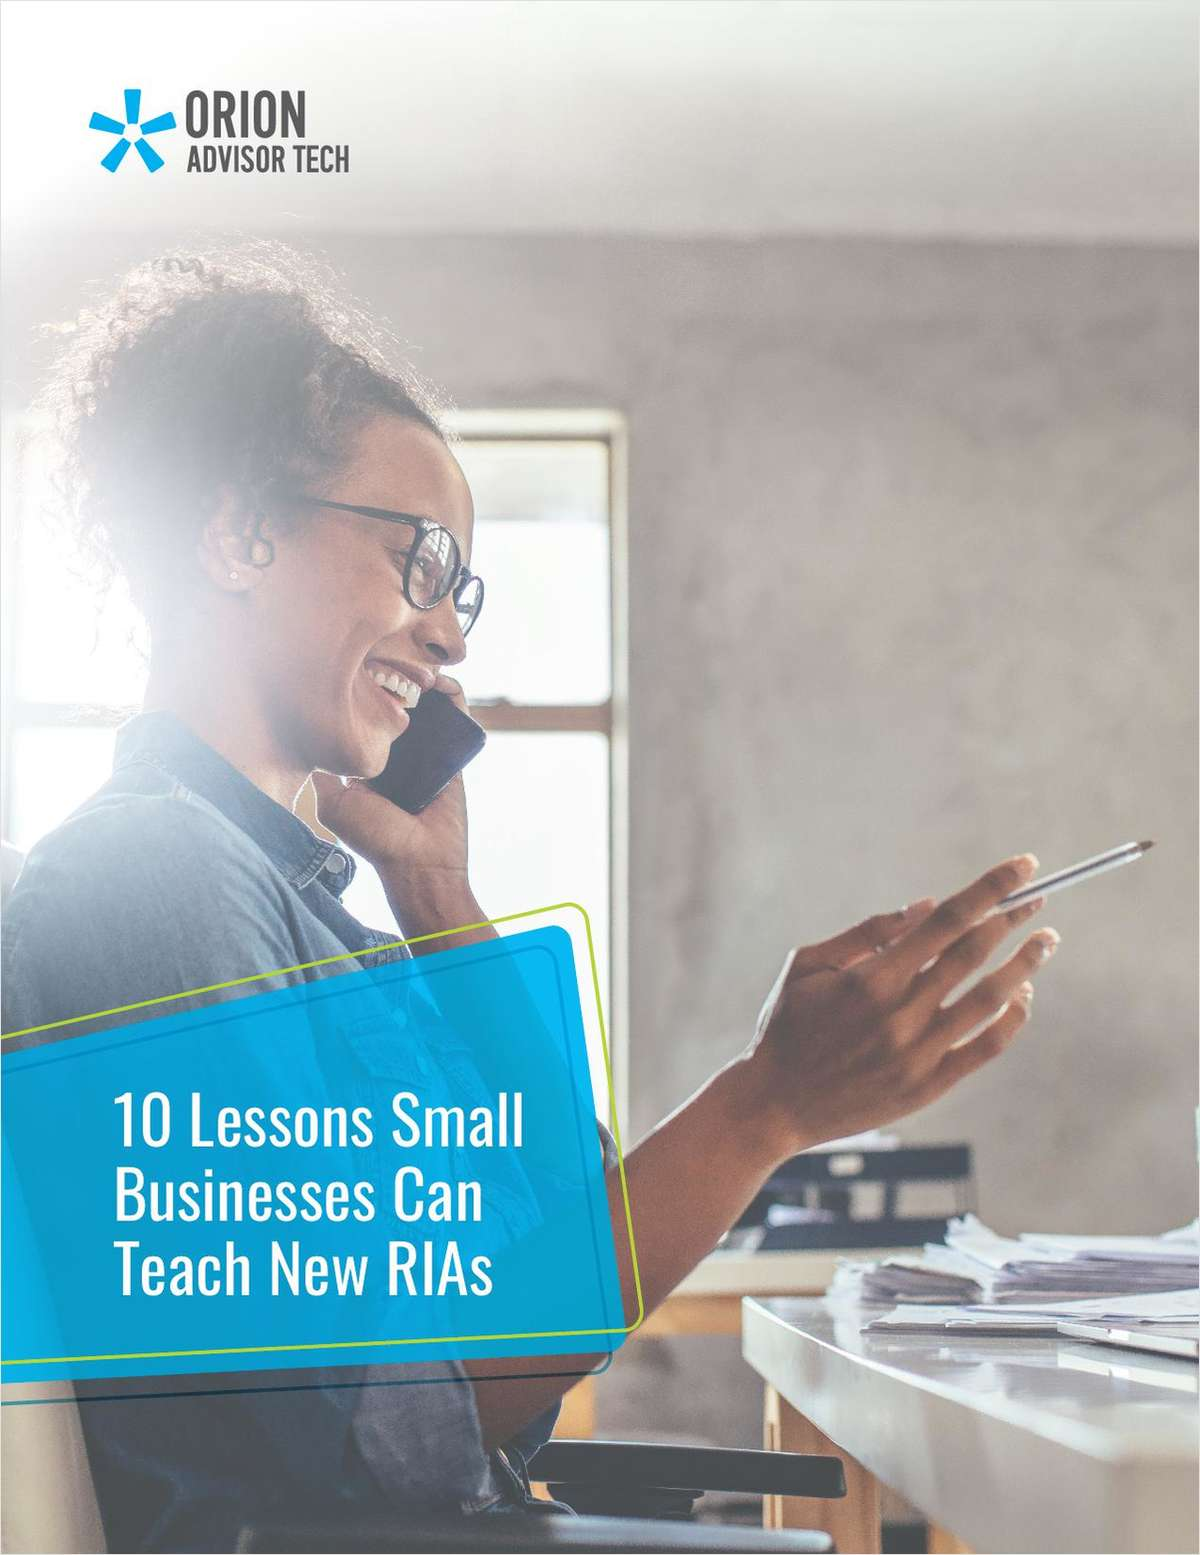 eBook: Ten Lessons Small Businesses Can Teach New RIAs